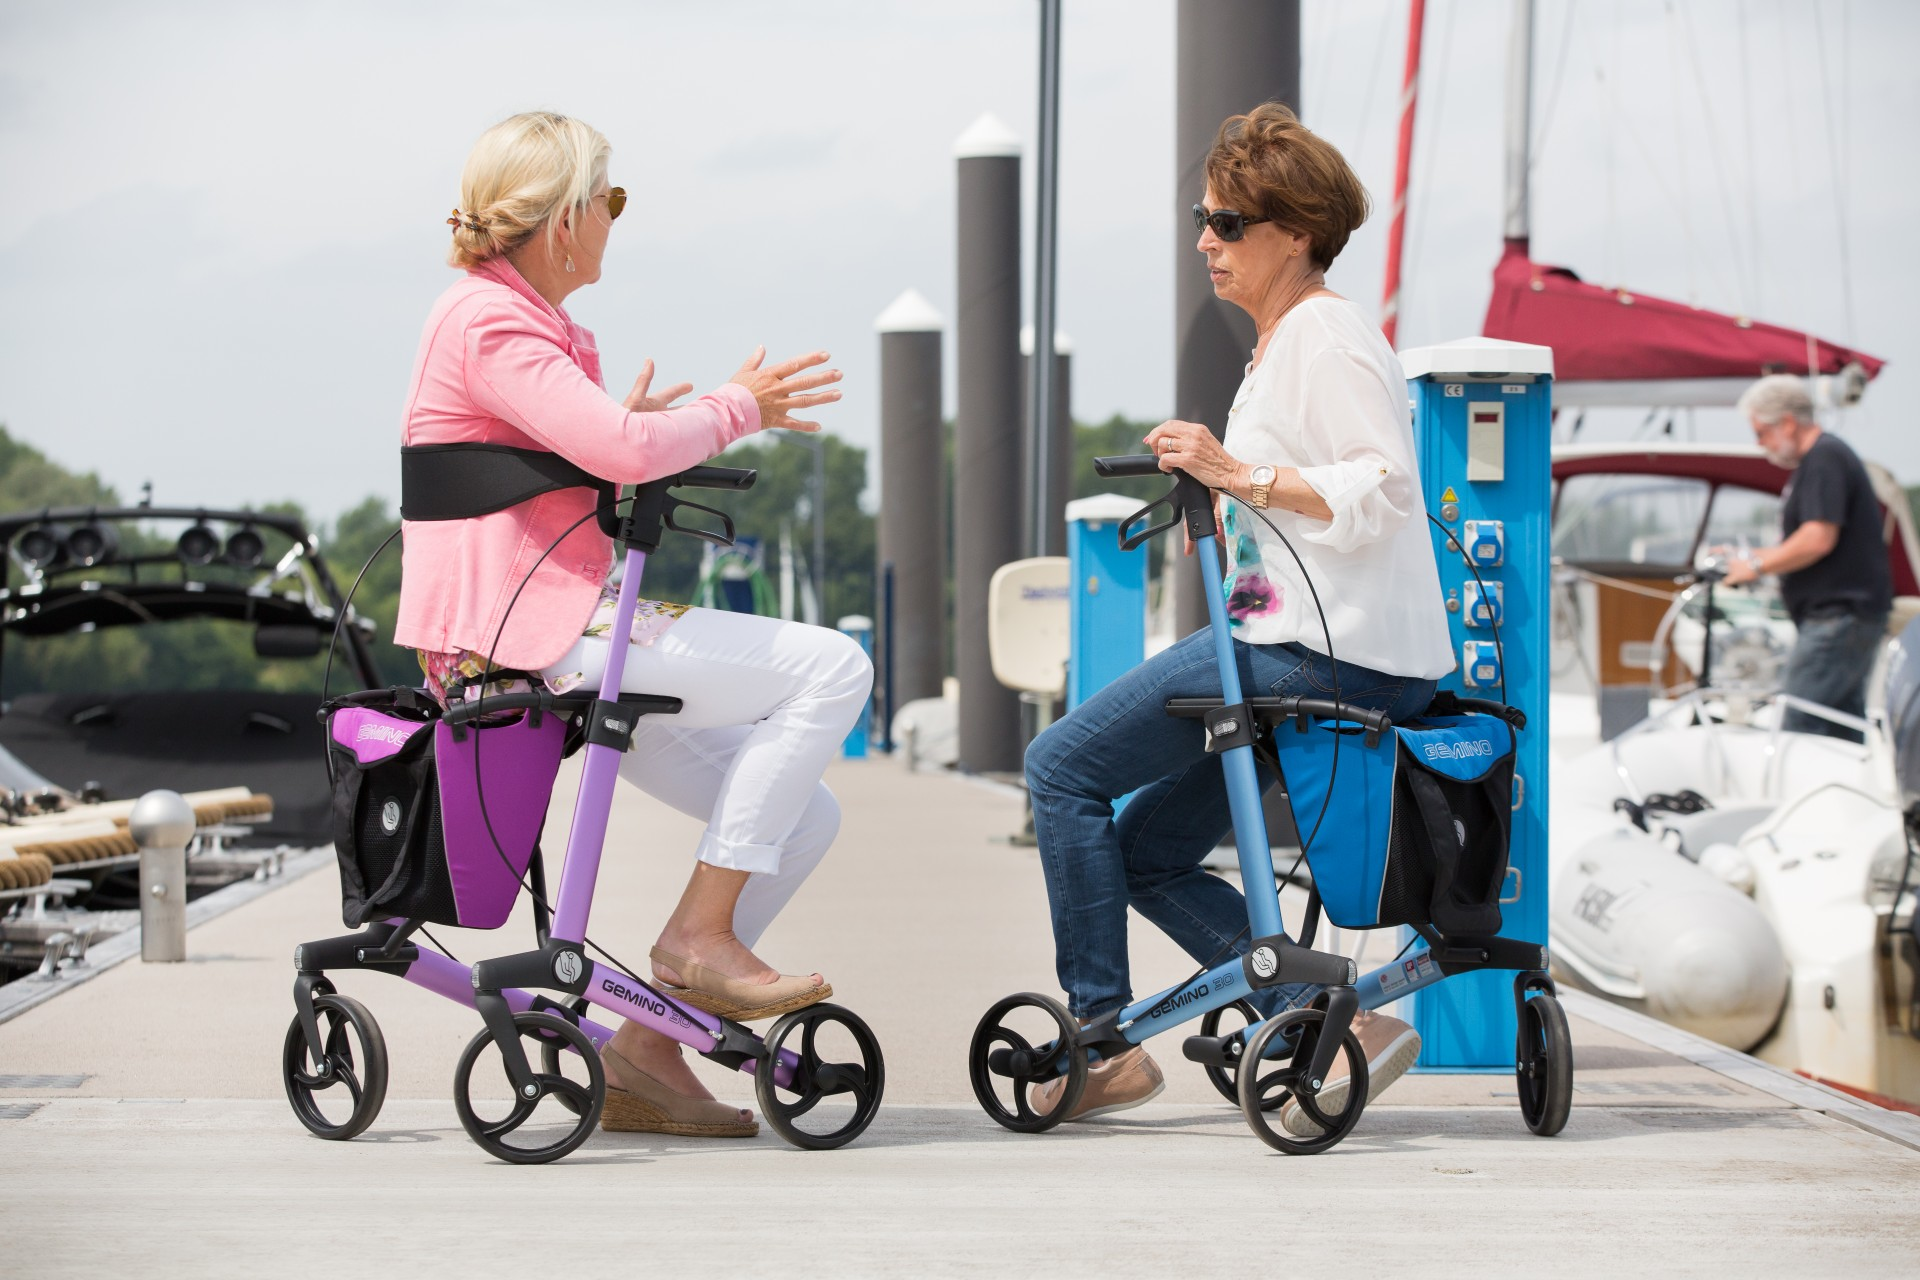 Gemino 30 rollators van Sunrise Medical in roze and blauw met tas en rugsteun